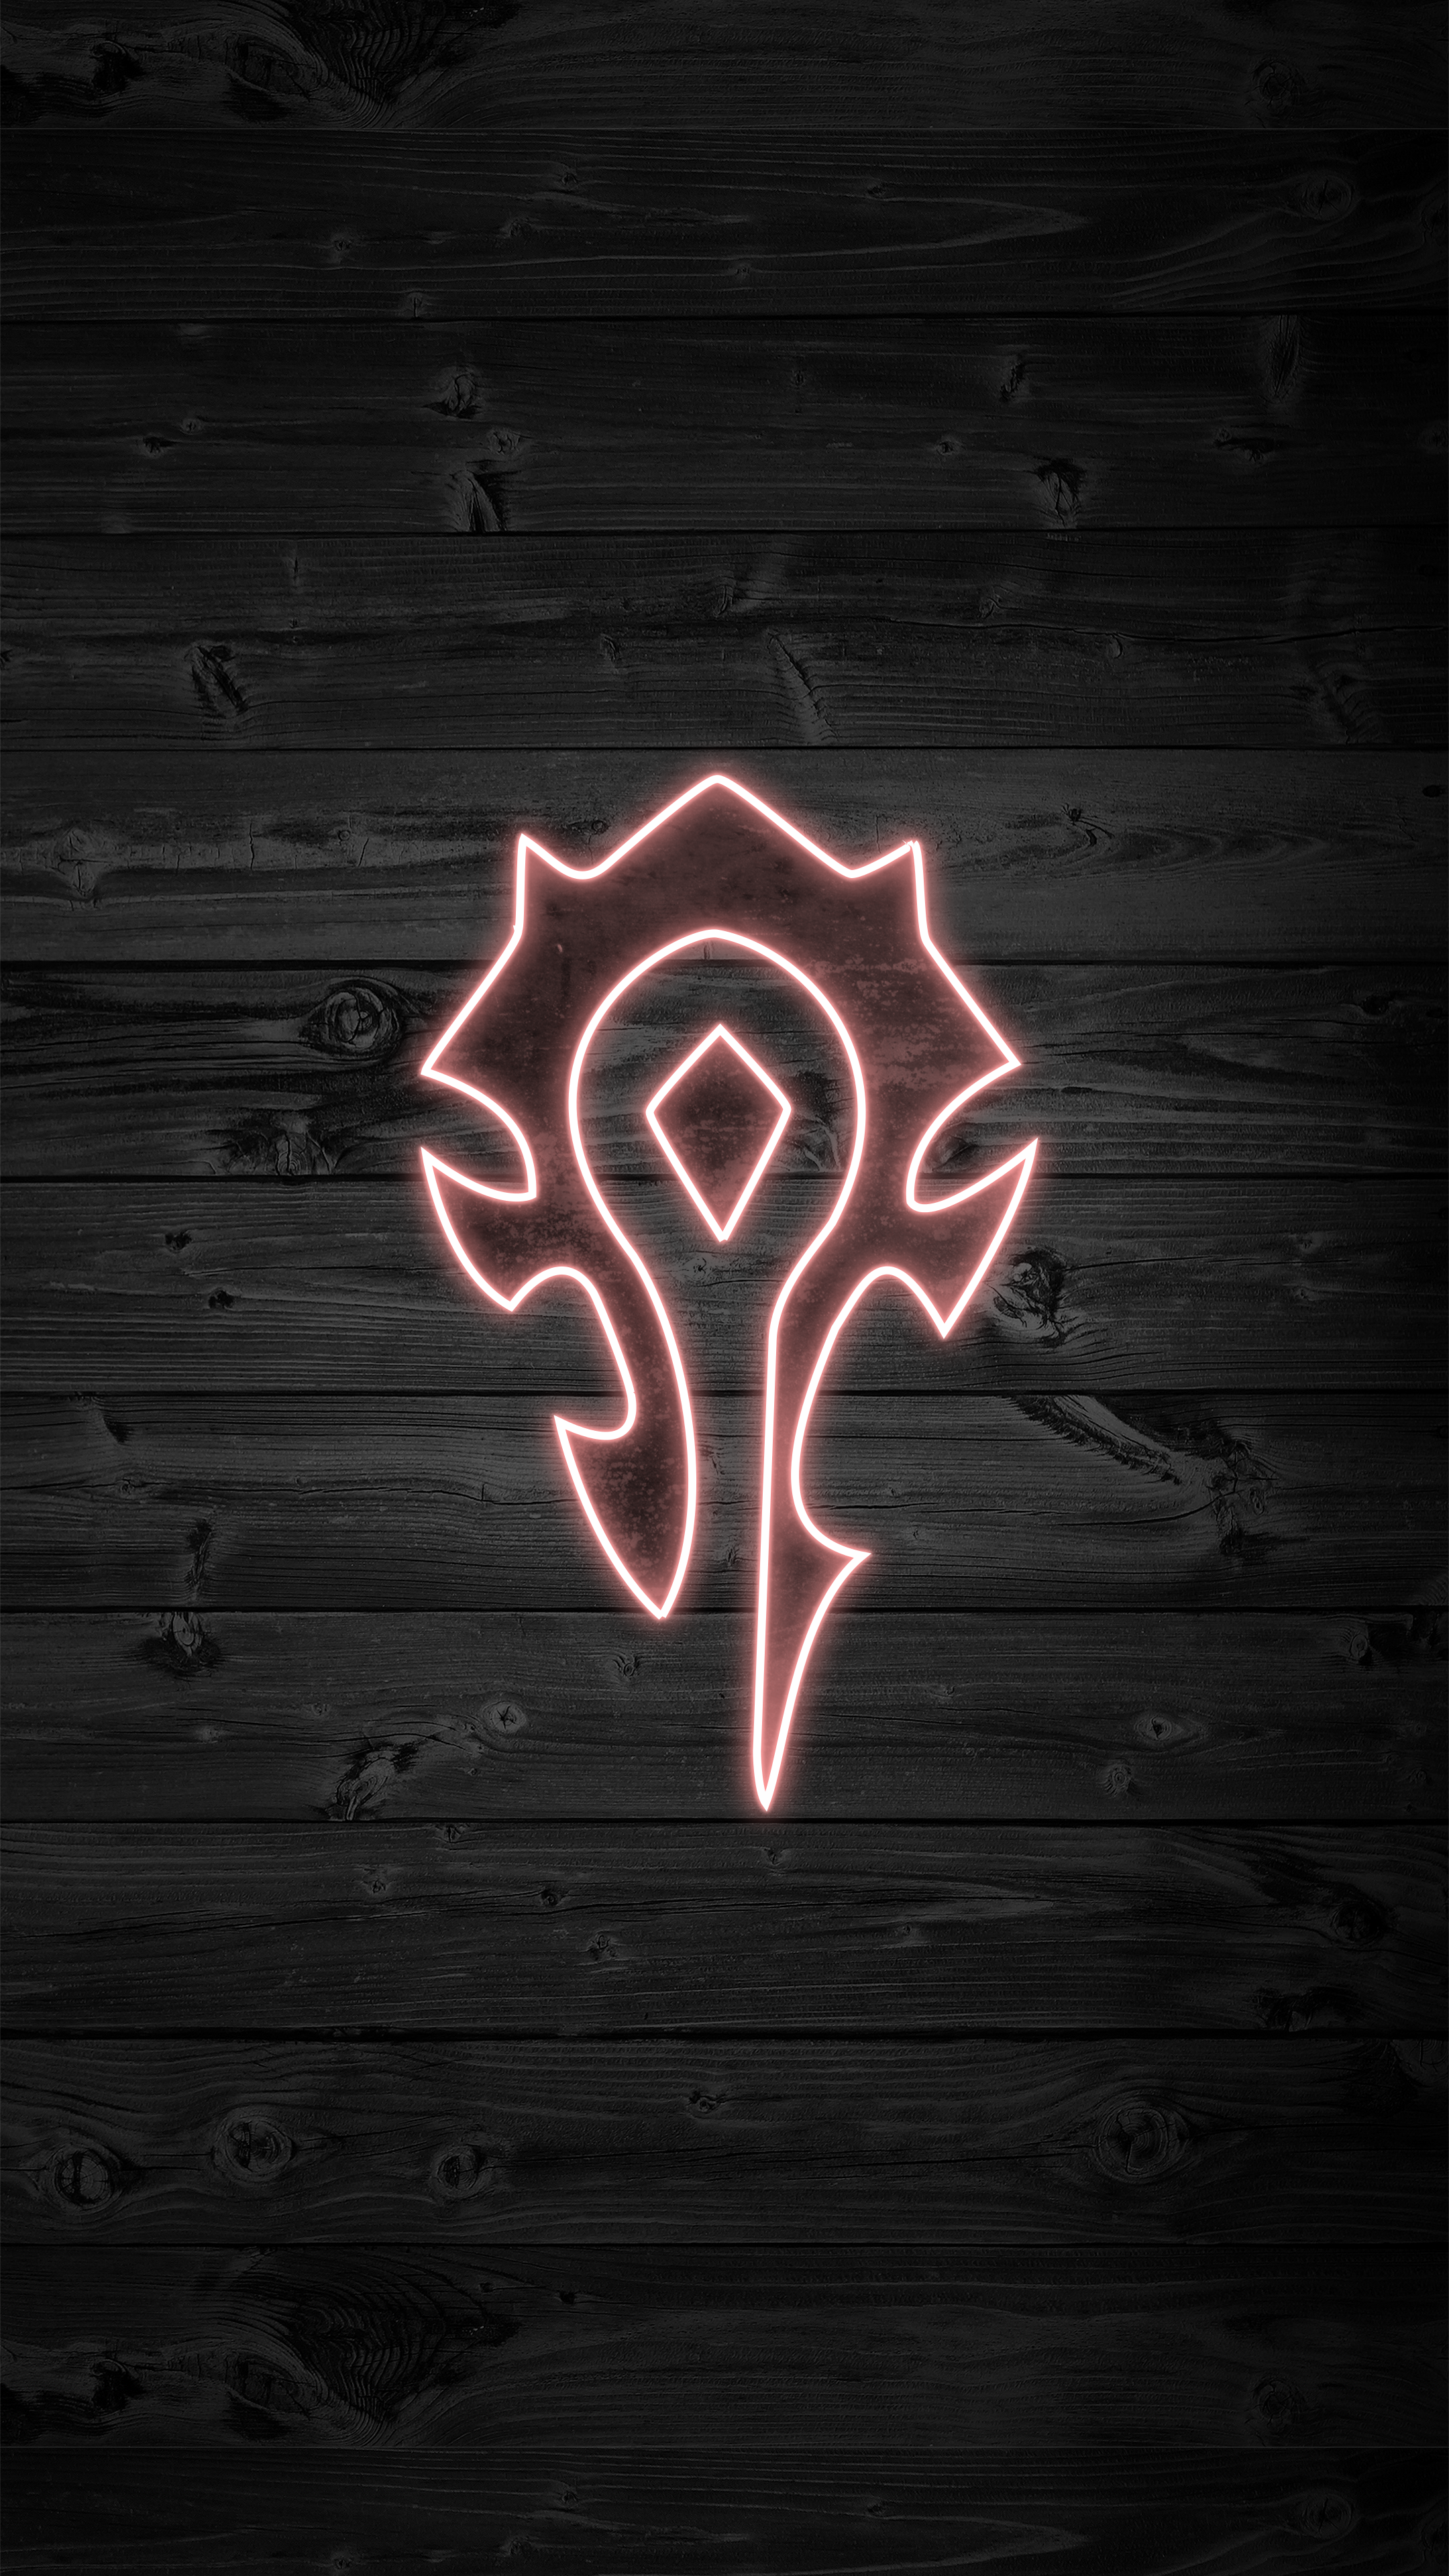 horde symbol wallpaper 4k resolution portrait by